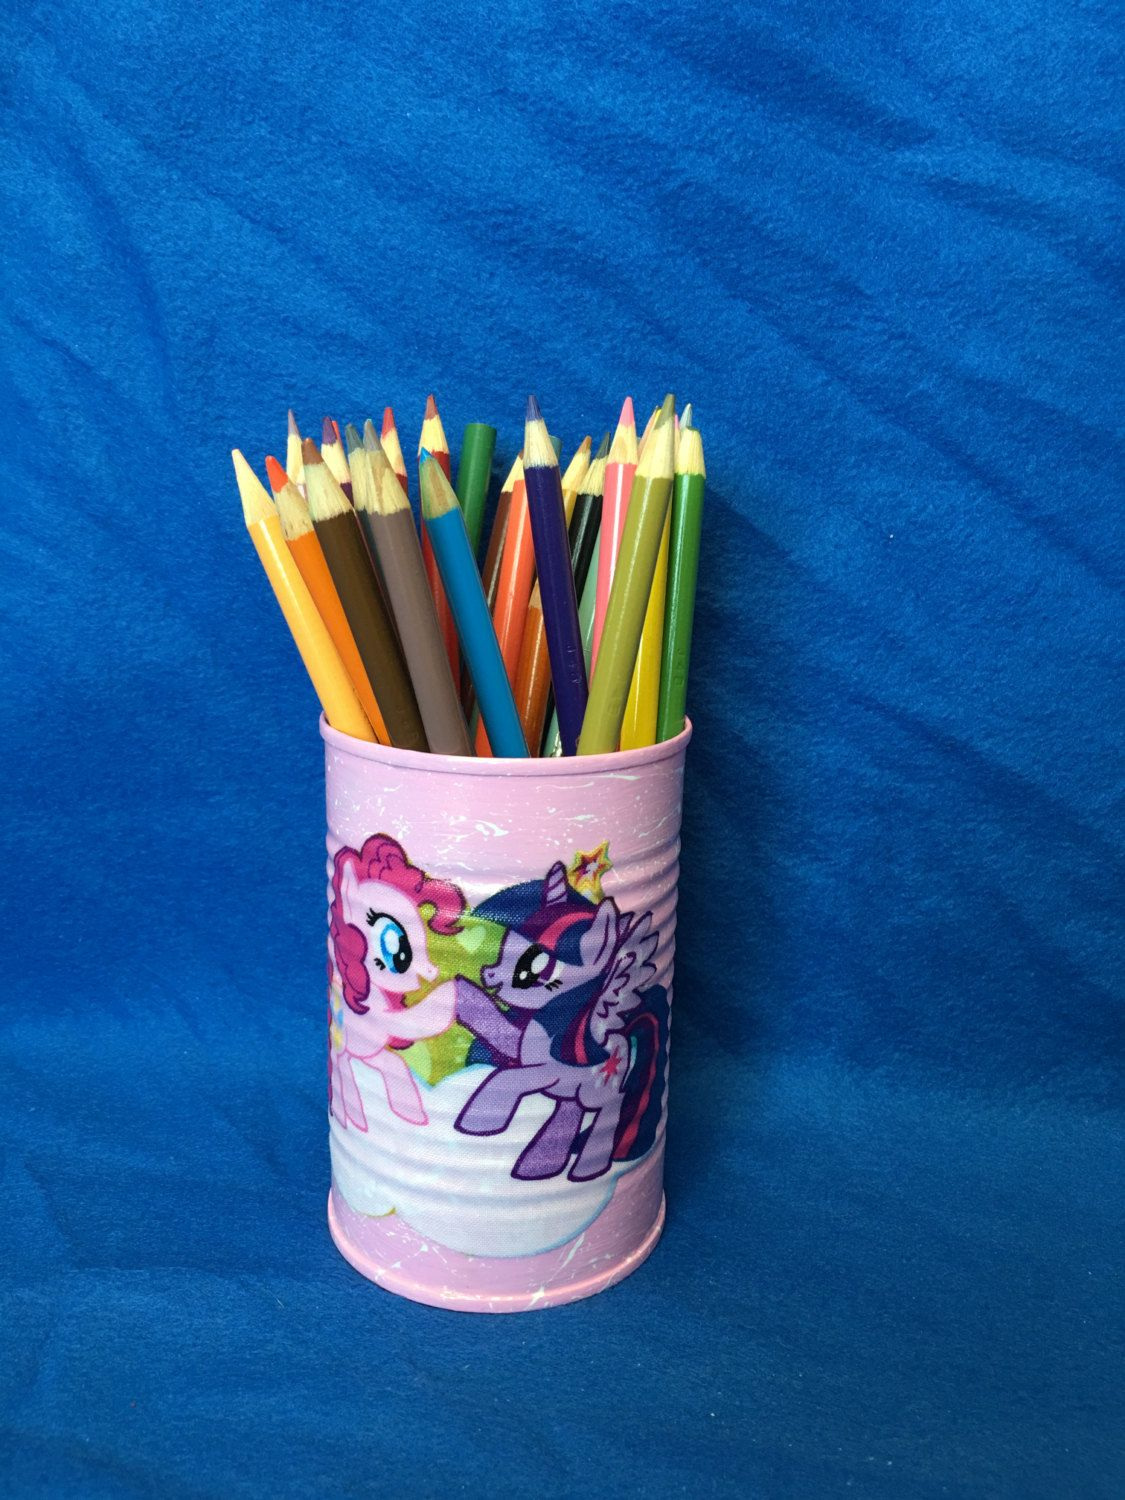 MY LITTLE PONY Can Holder/Pencils/Pens/Markers/Money/Candy/Hair Accessories/Gift Holder by KreationsGalore on Etsy